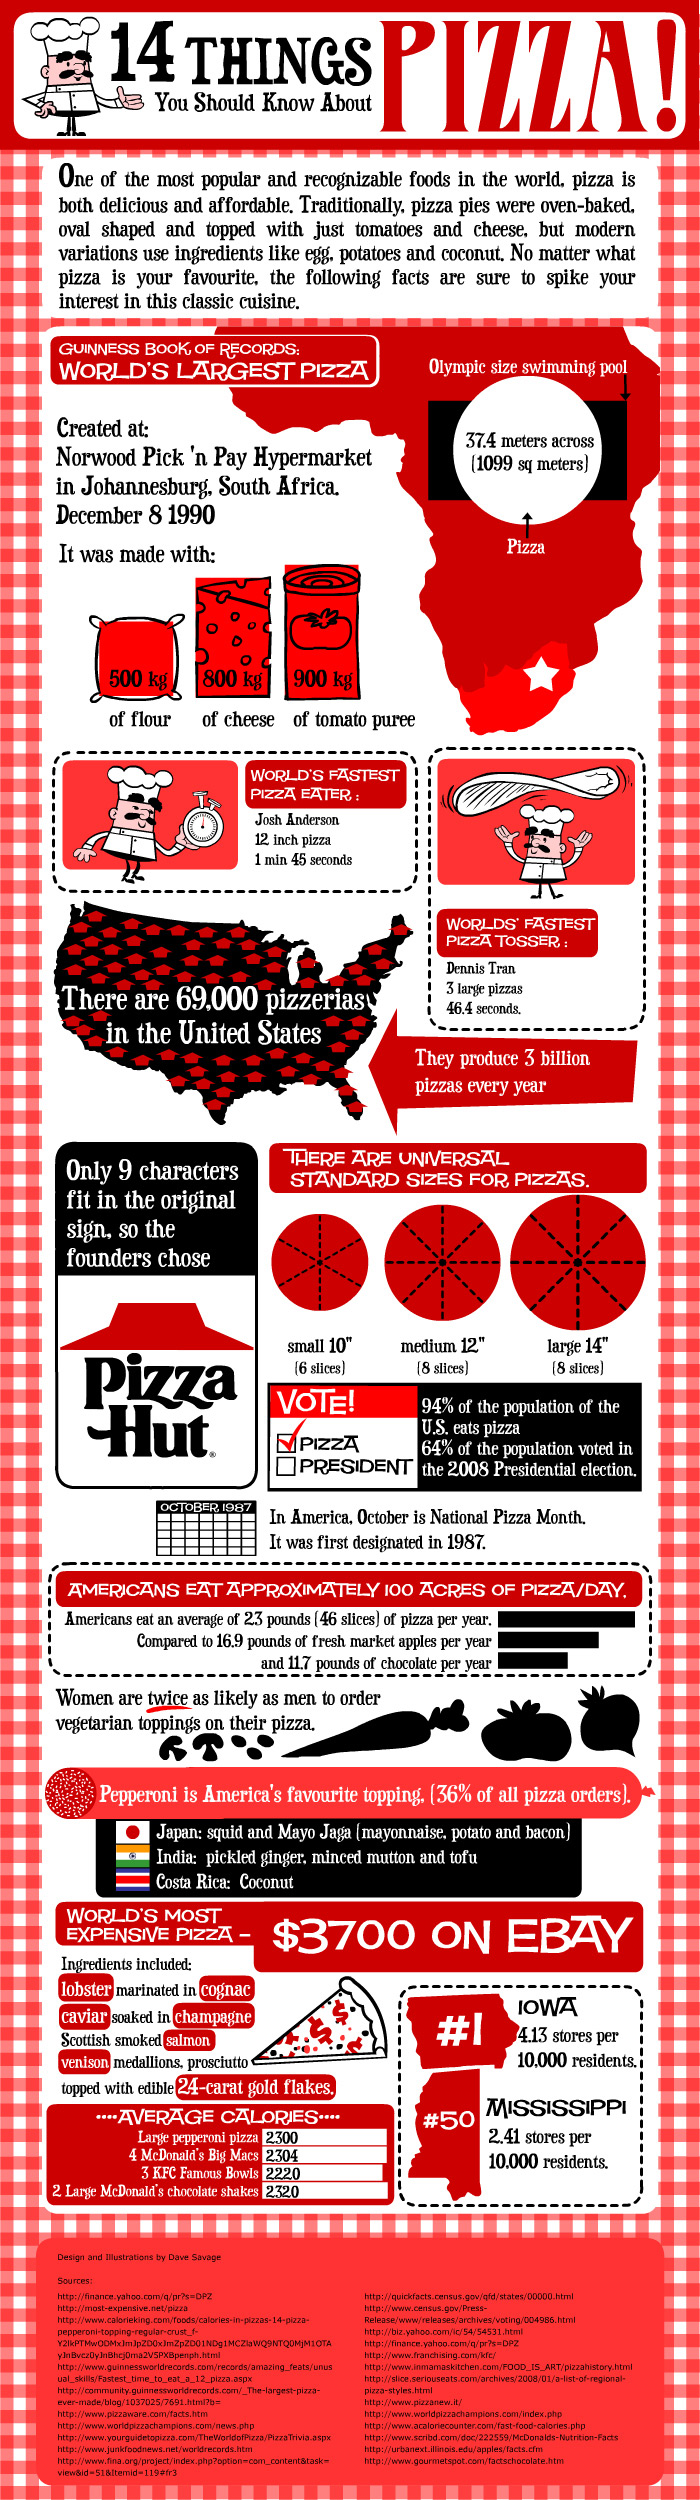 14 Things You Should Know About Pizza